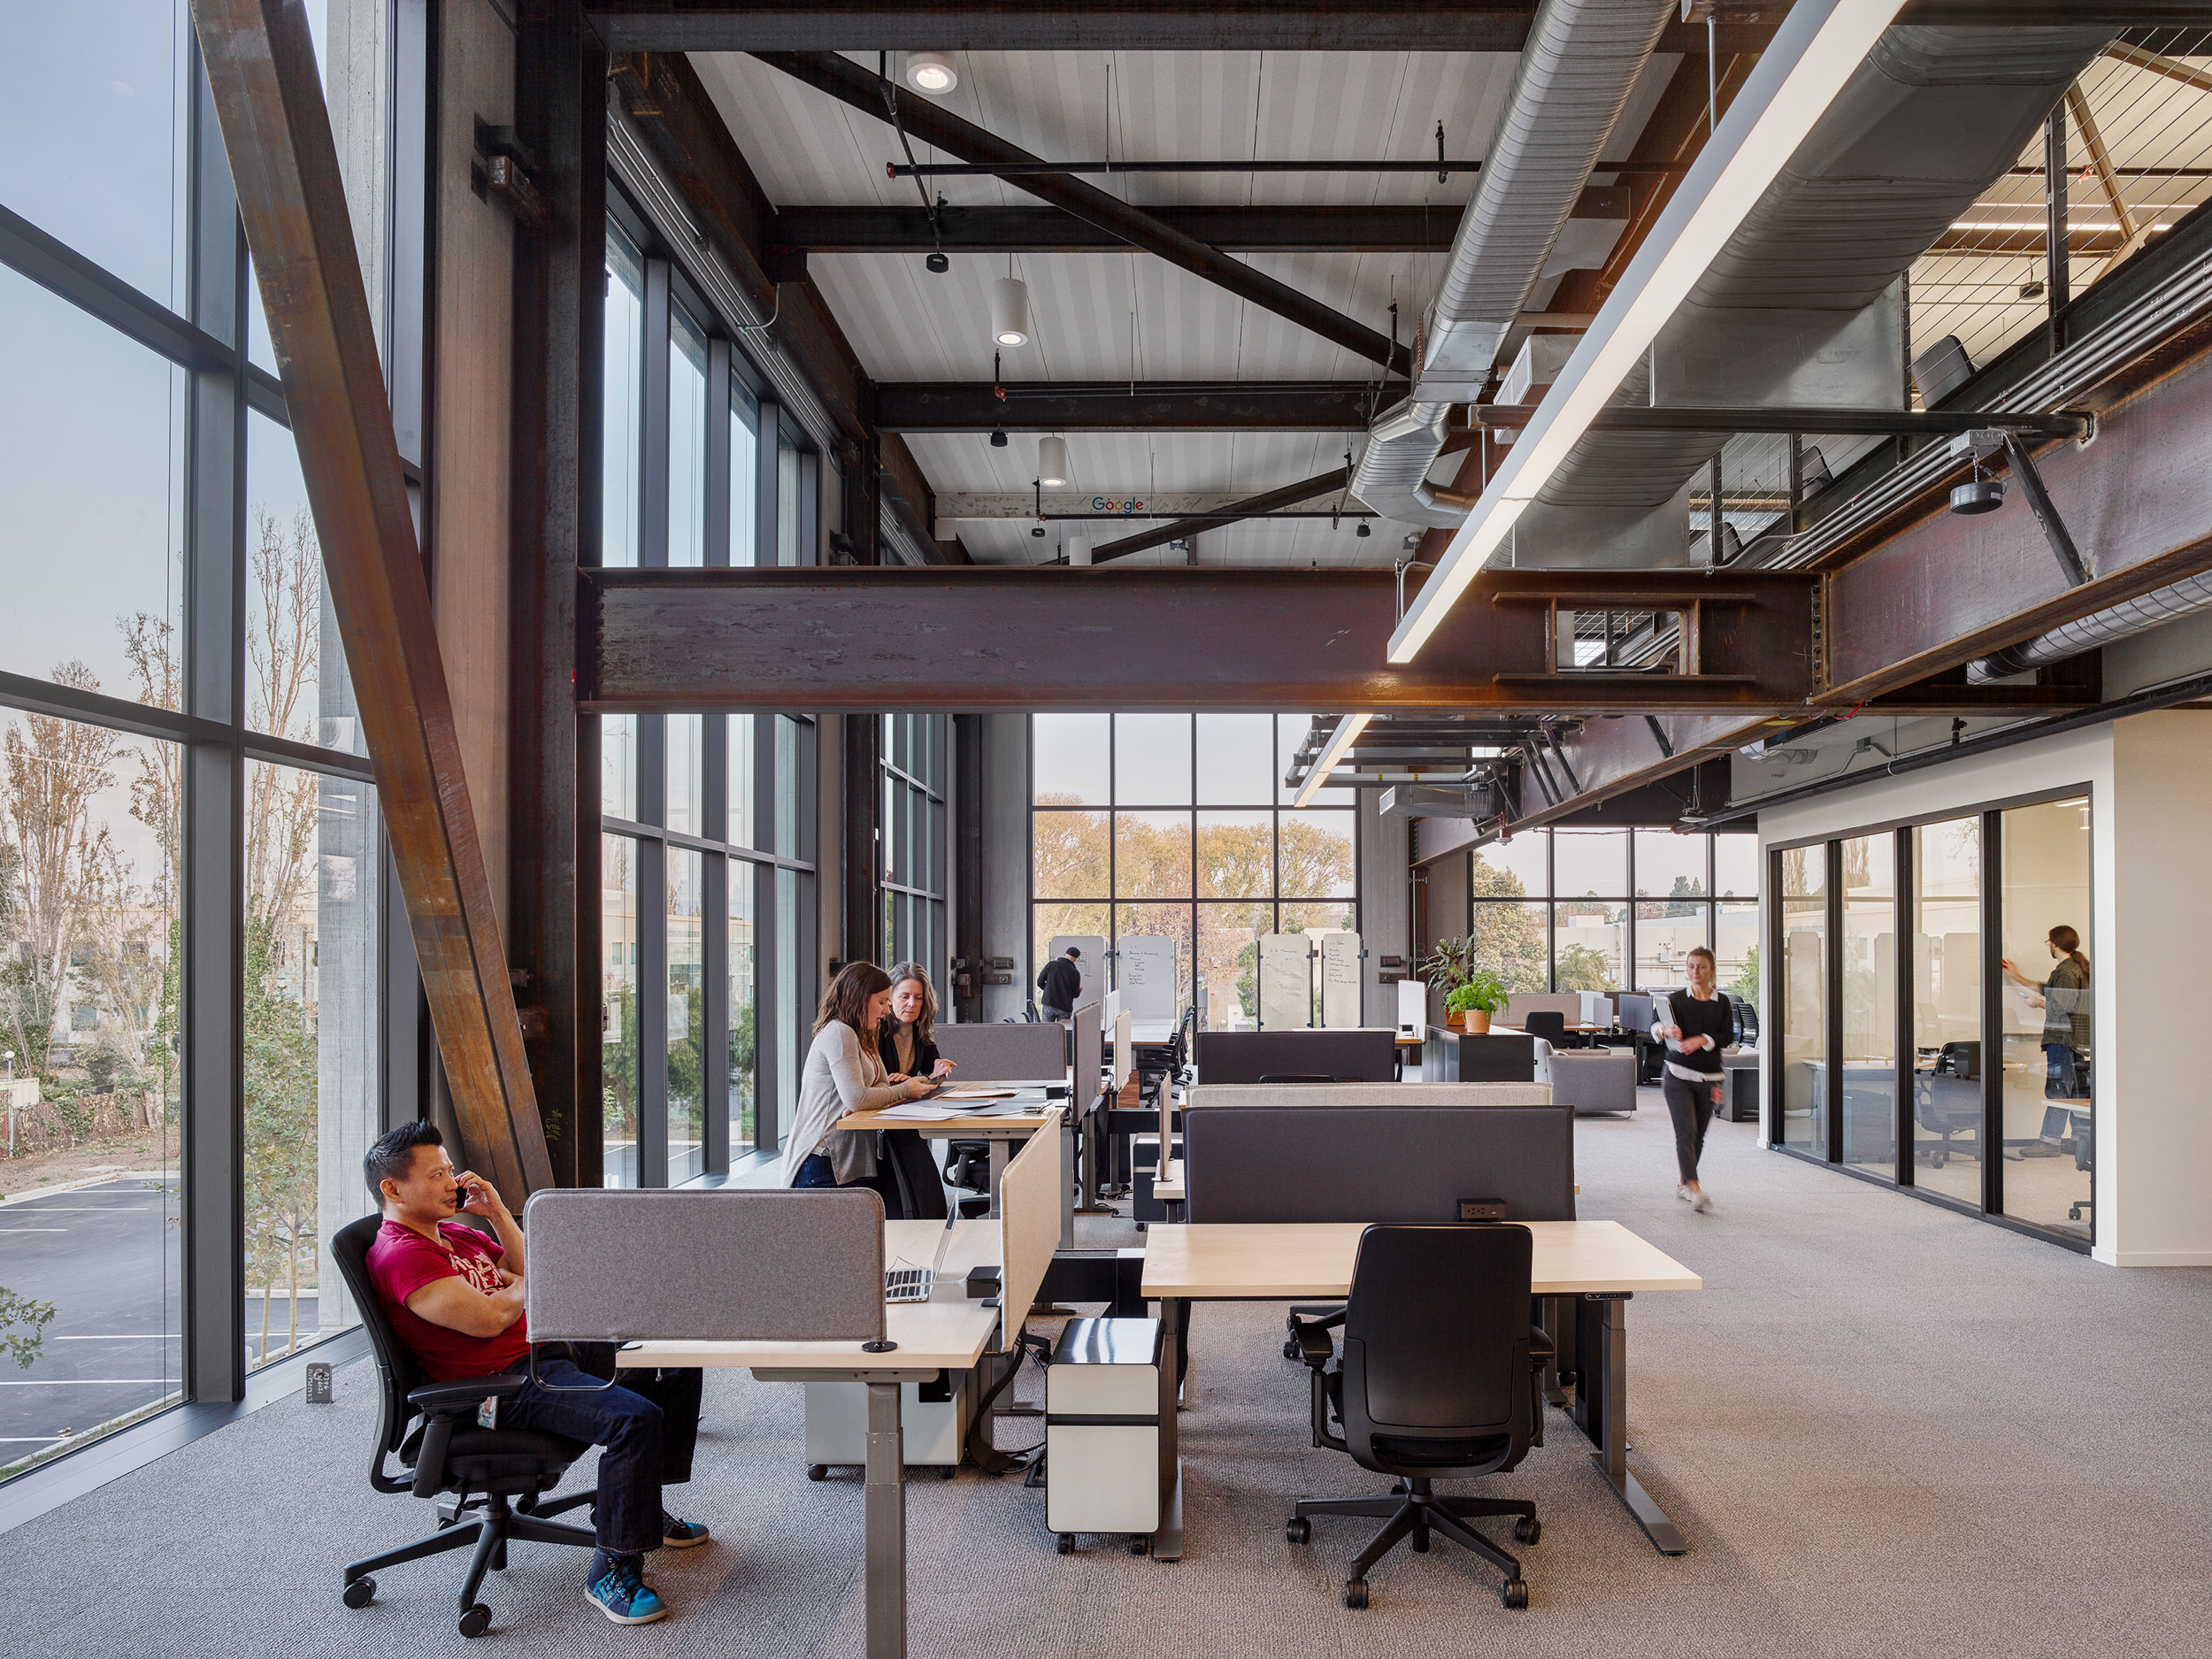 The perimeter of the building features double-height open plan workspace. Enclosed workspaces for smaller teams are below the mezzanine.